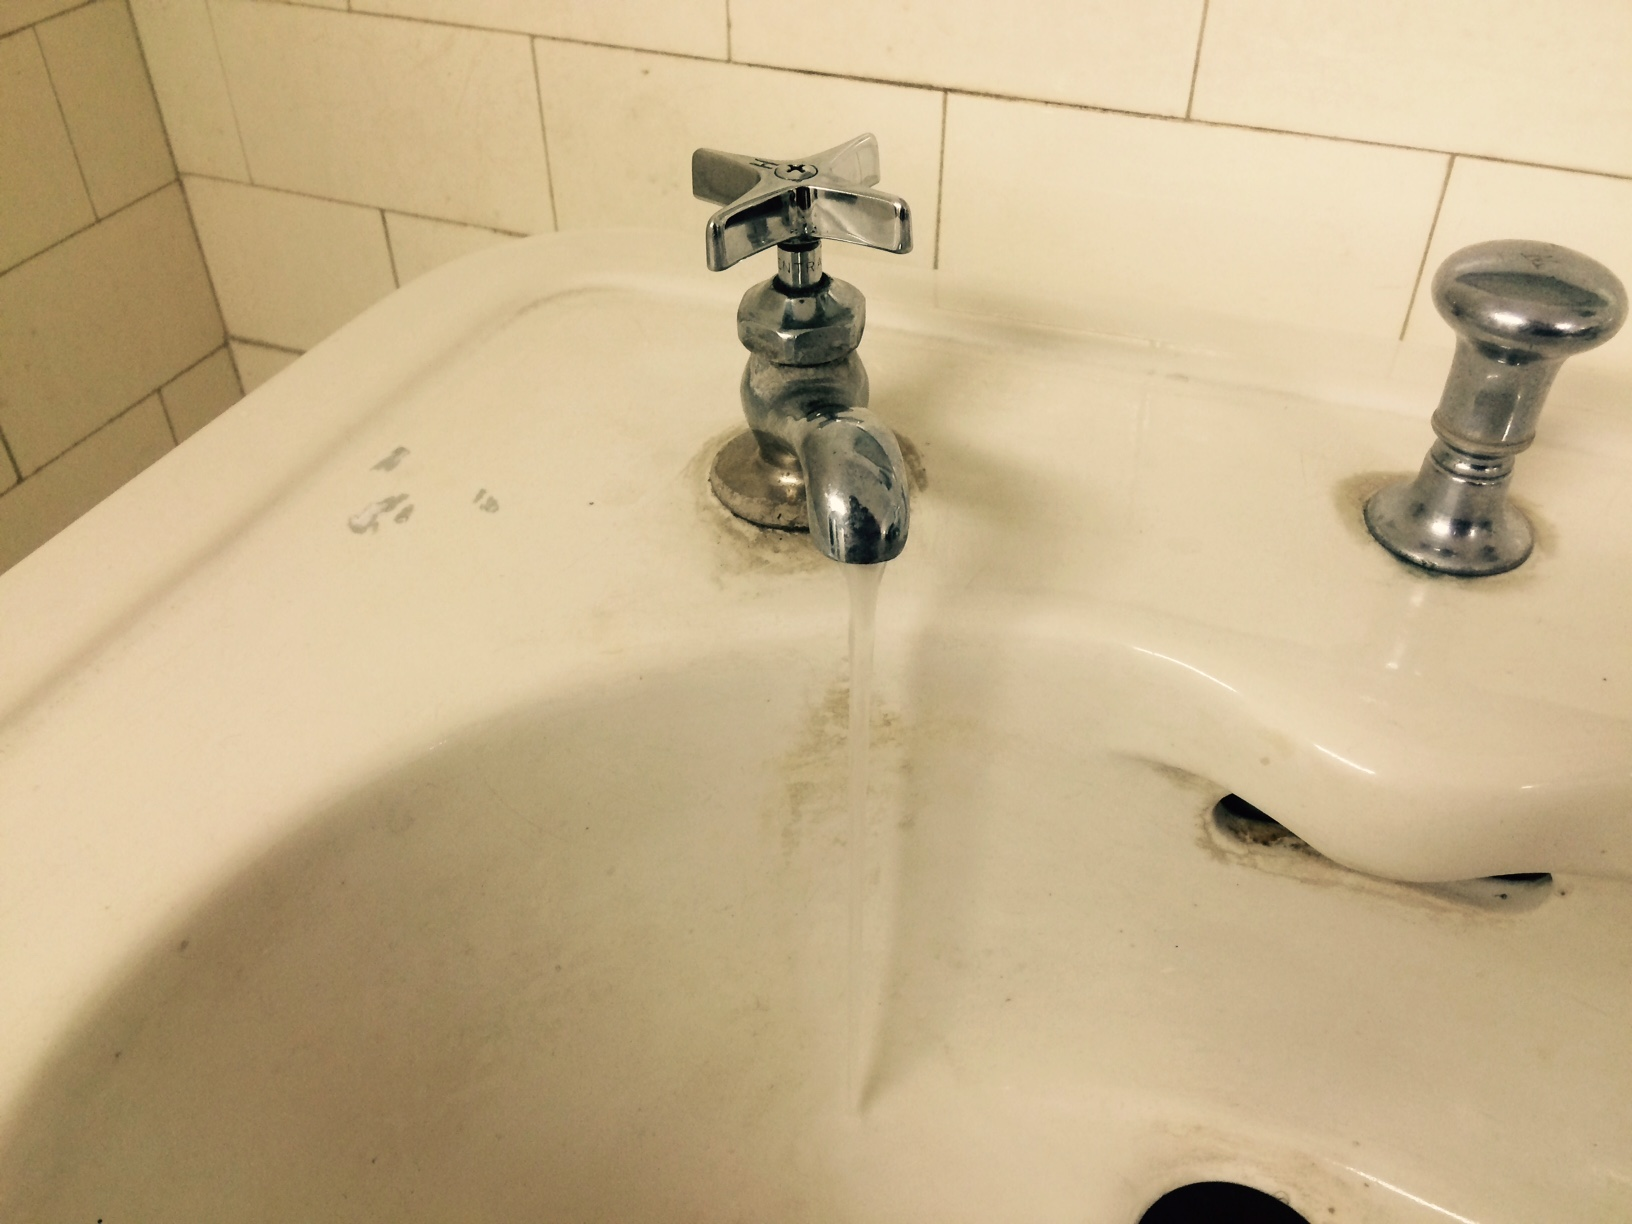 Water pressure in eastern Niagara County may drop Tuesday as valve ...